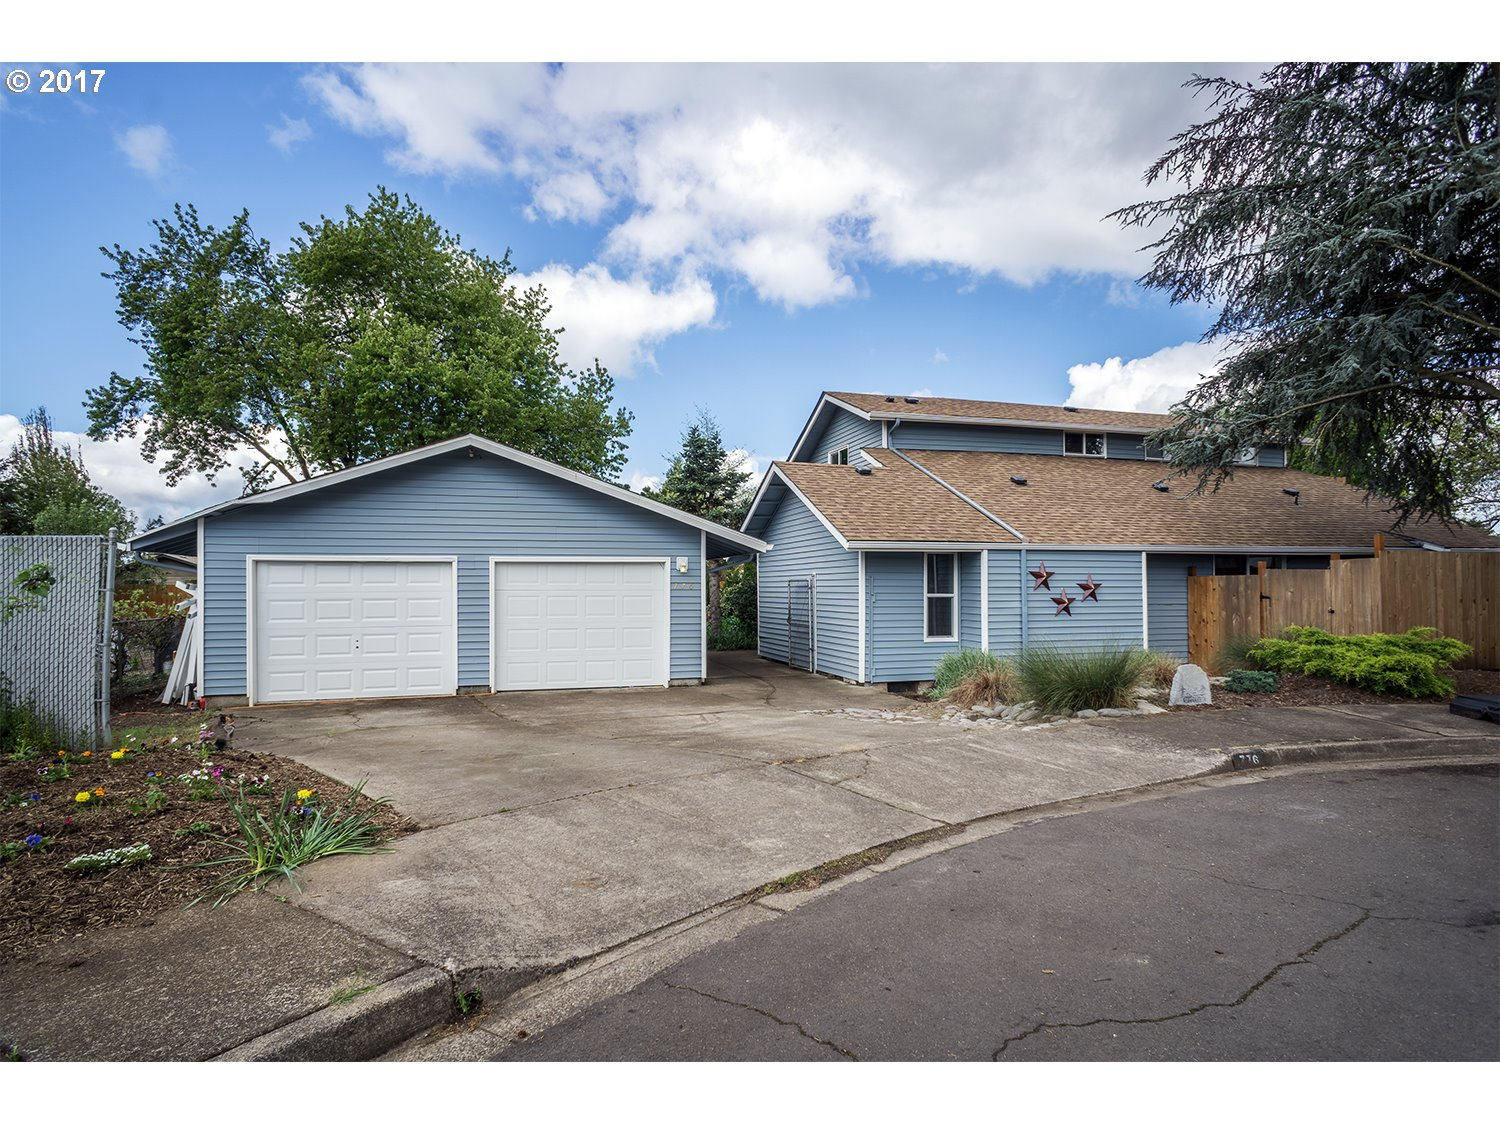 776 V ST, Springfield, OR 97477